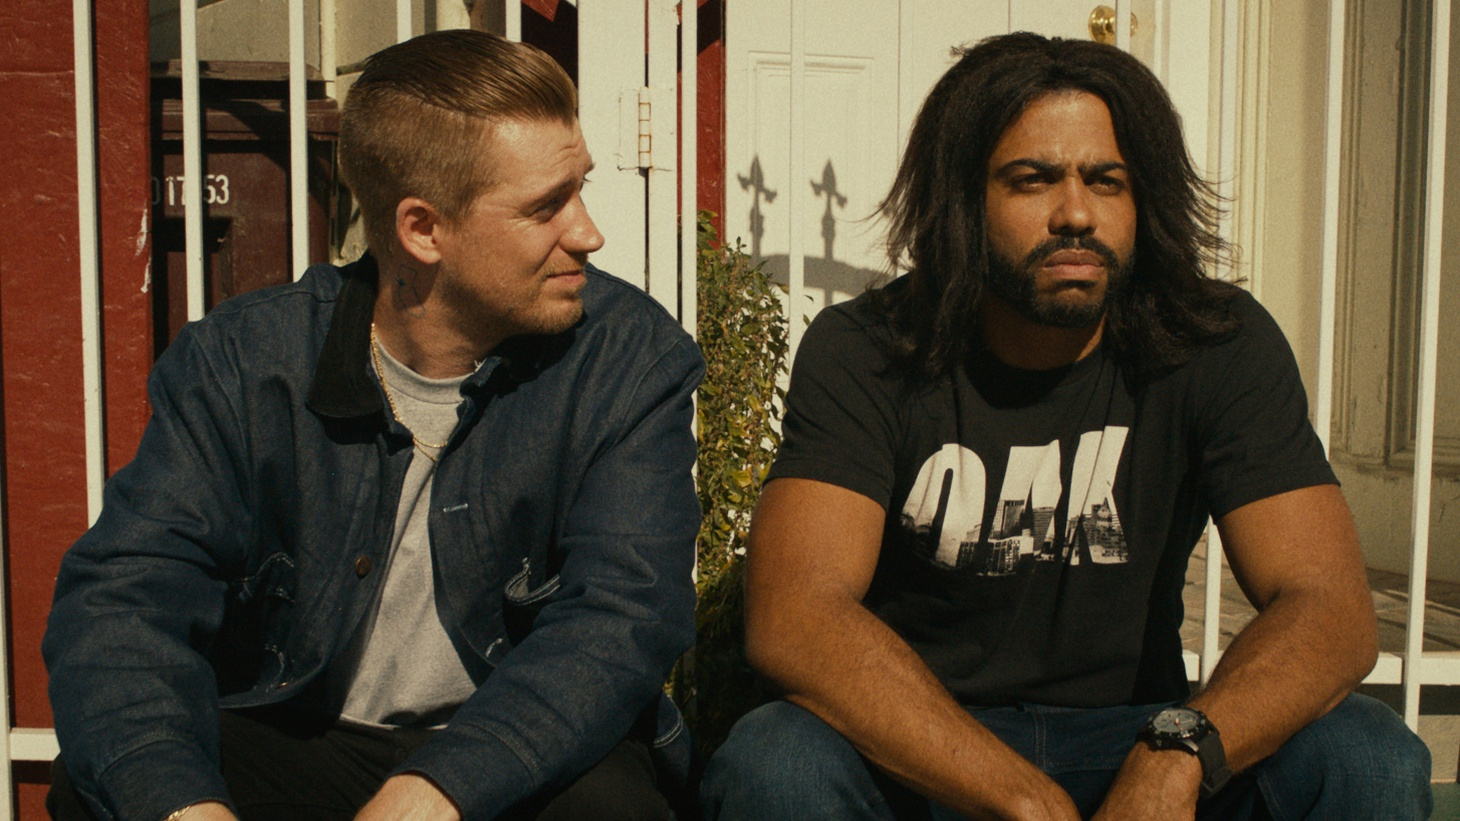 Stars of 'Blindspotting' Daveed Diggs & Rafael Casal discuss their love letter to Oakland.